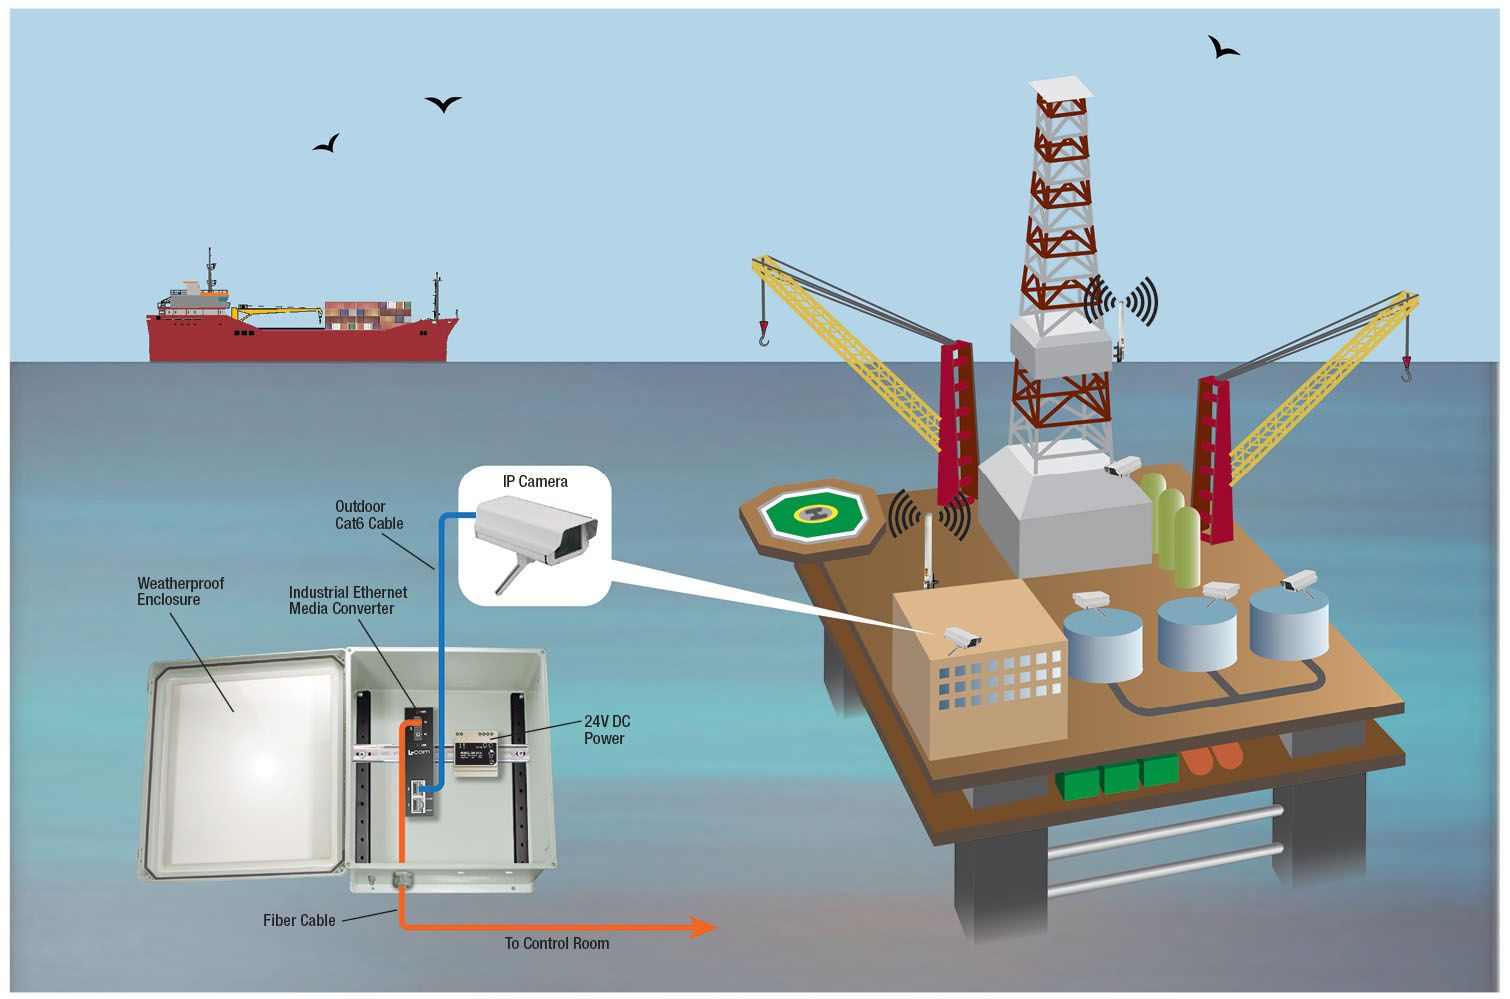 Print and post this Offshore Oil Platform Network Application (pdf